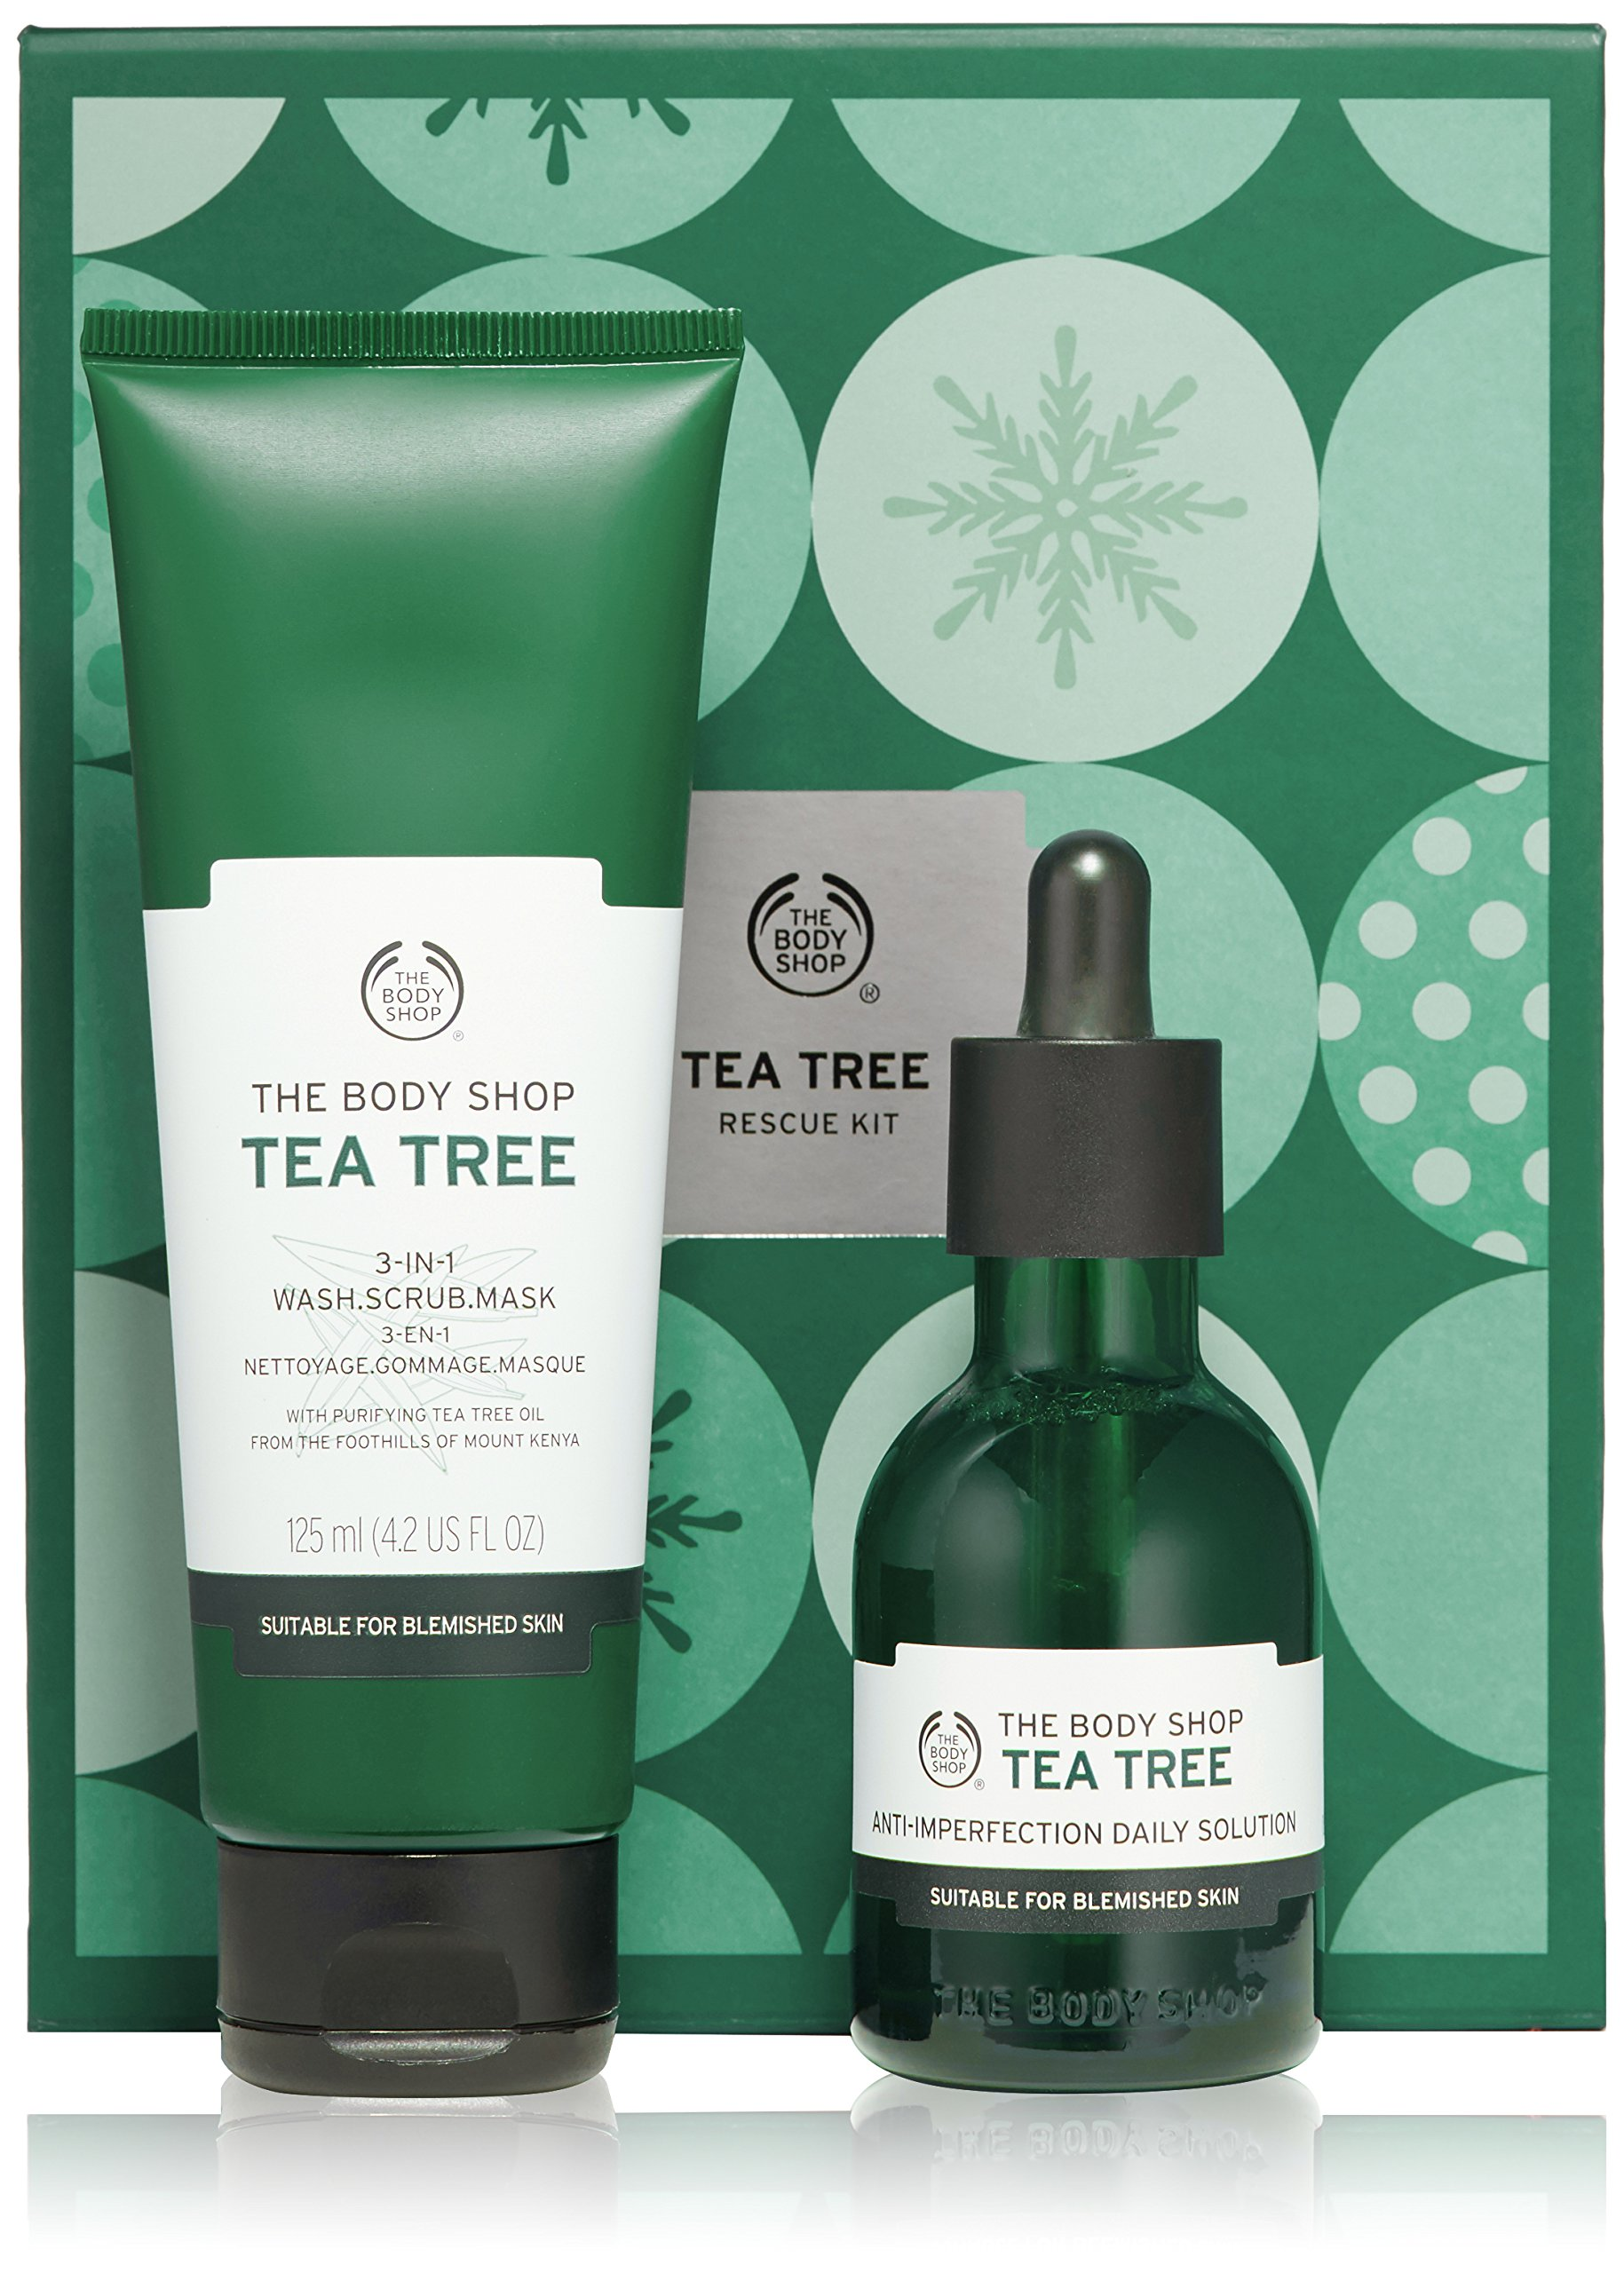 The Body Shop Tea Tree Rescue Kit Gift Set by The Body Shop (Image #1)